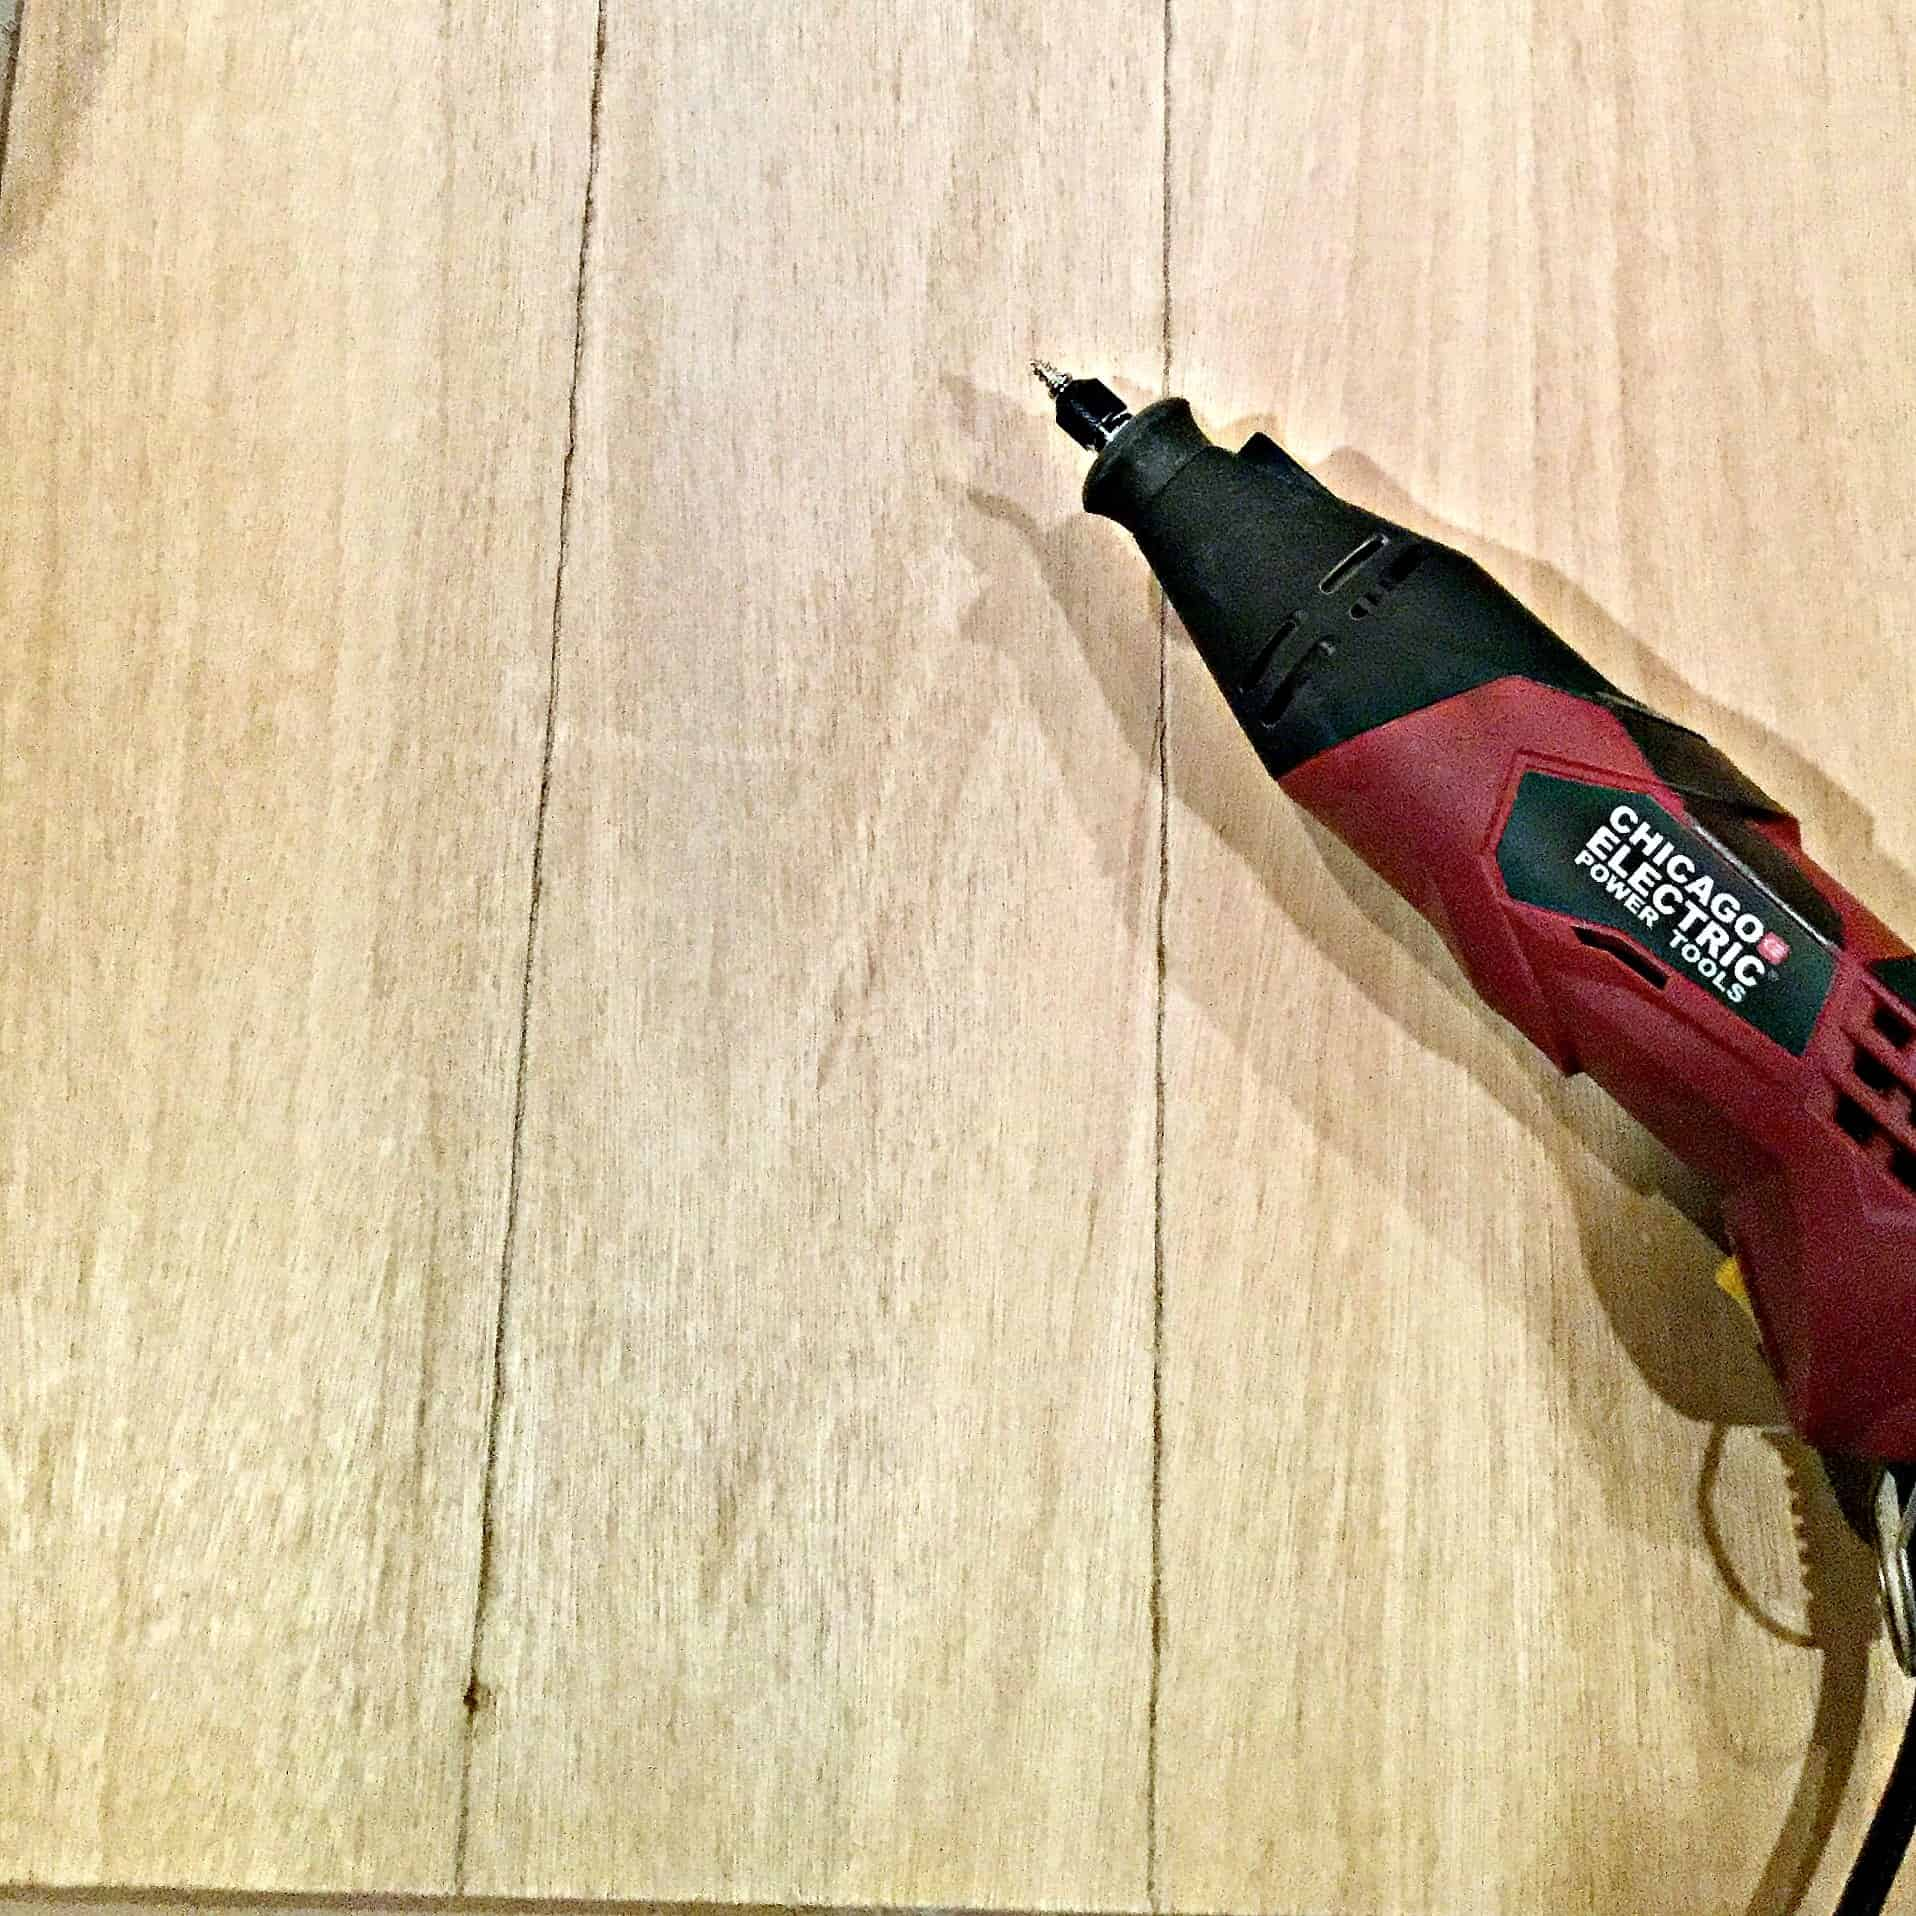 DIY Faux Shiplap Using A Dremel Tool-Creating Grooves in Plywood